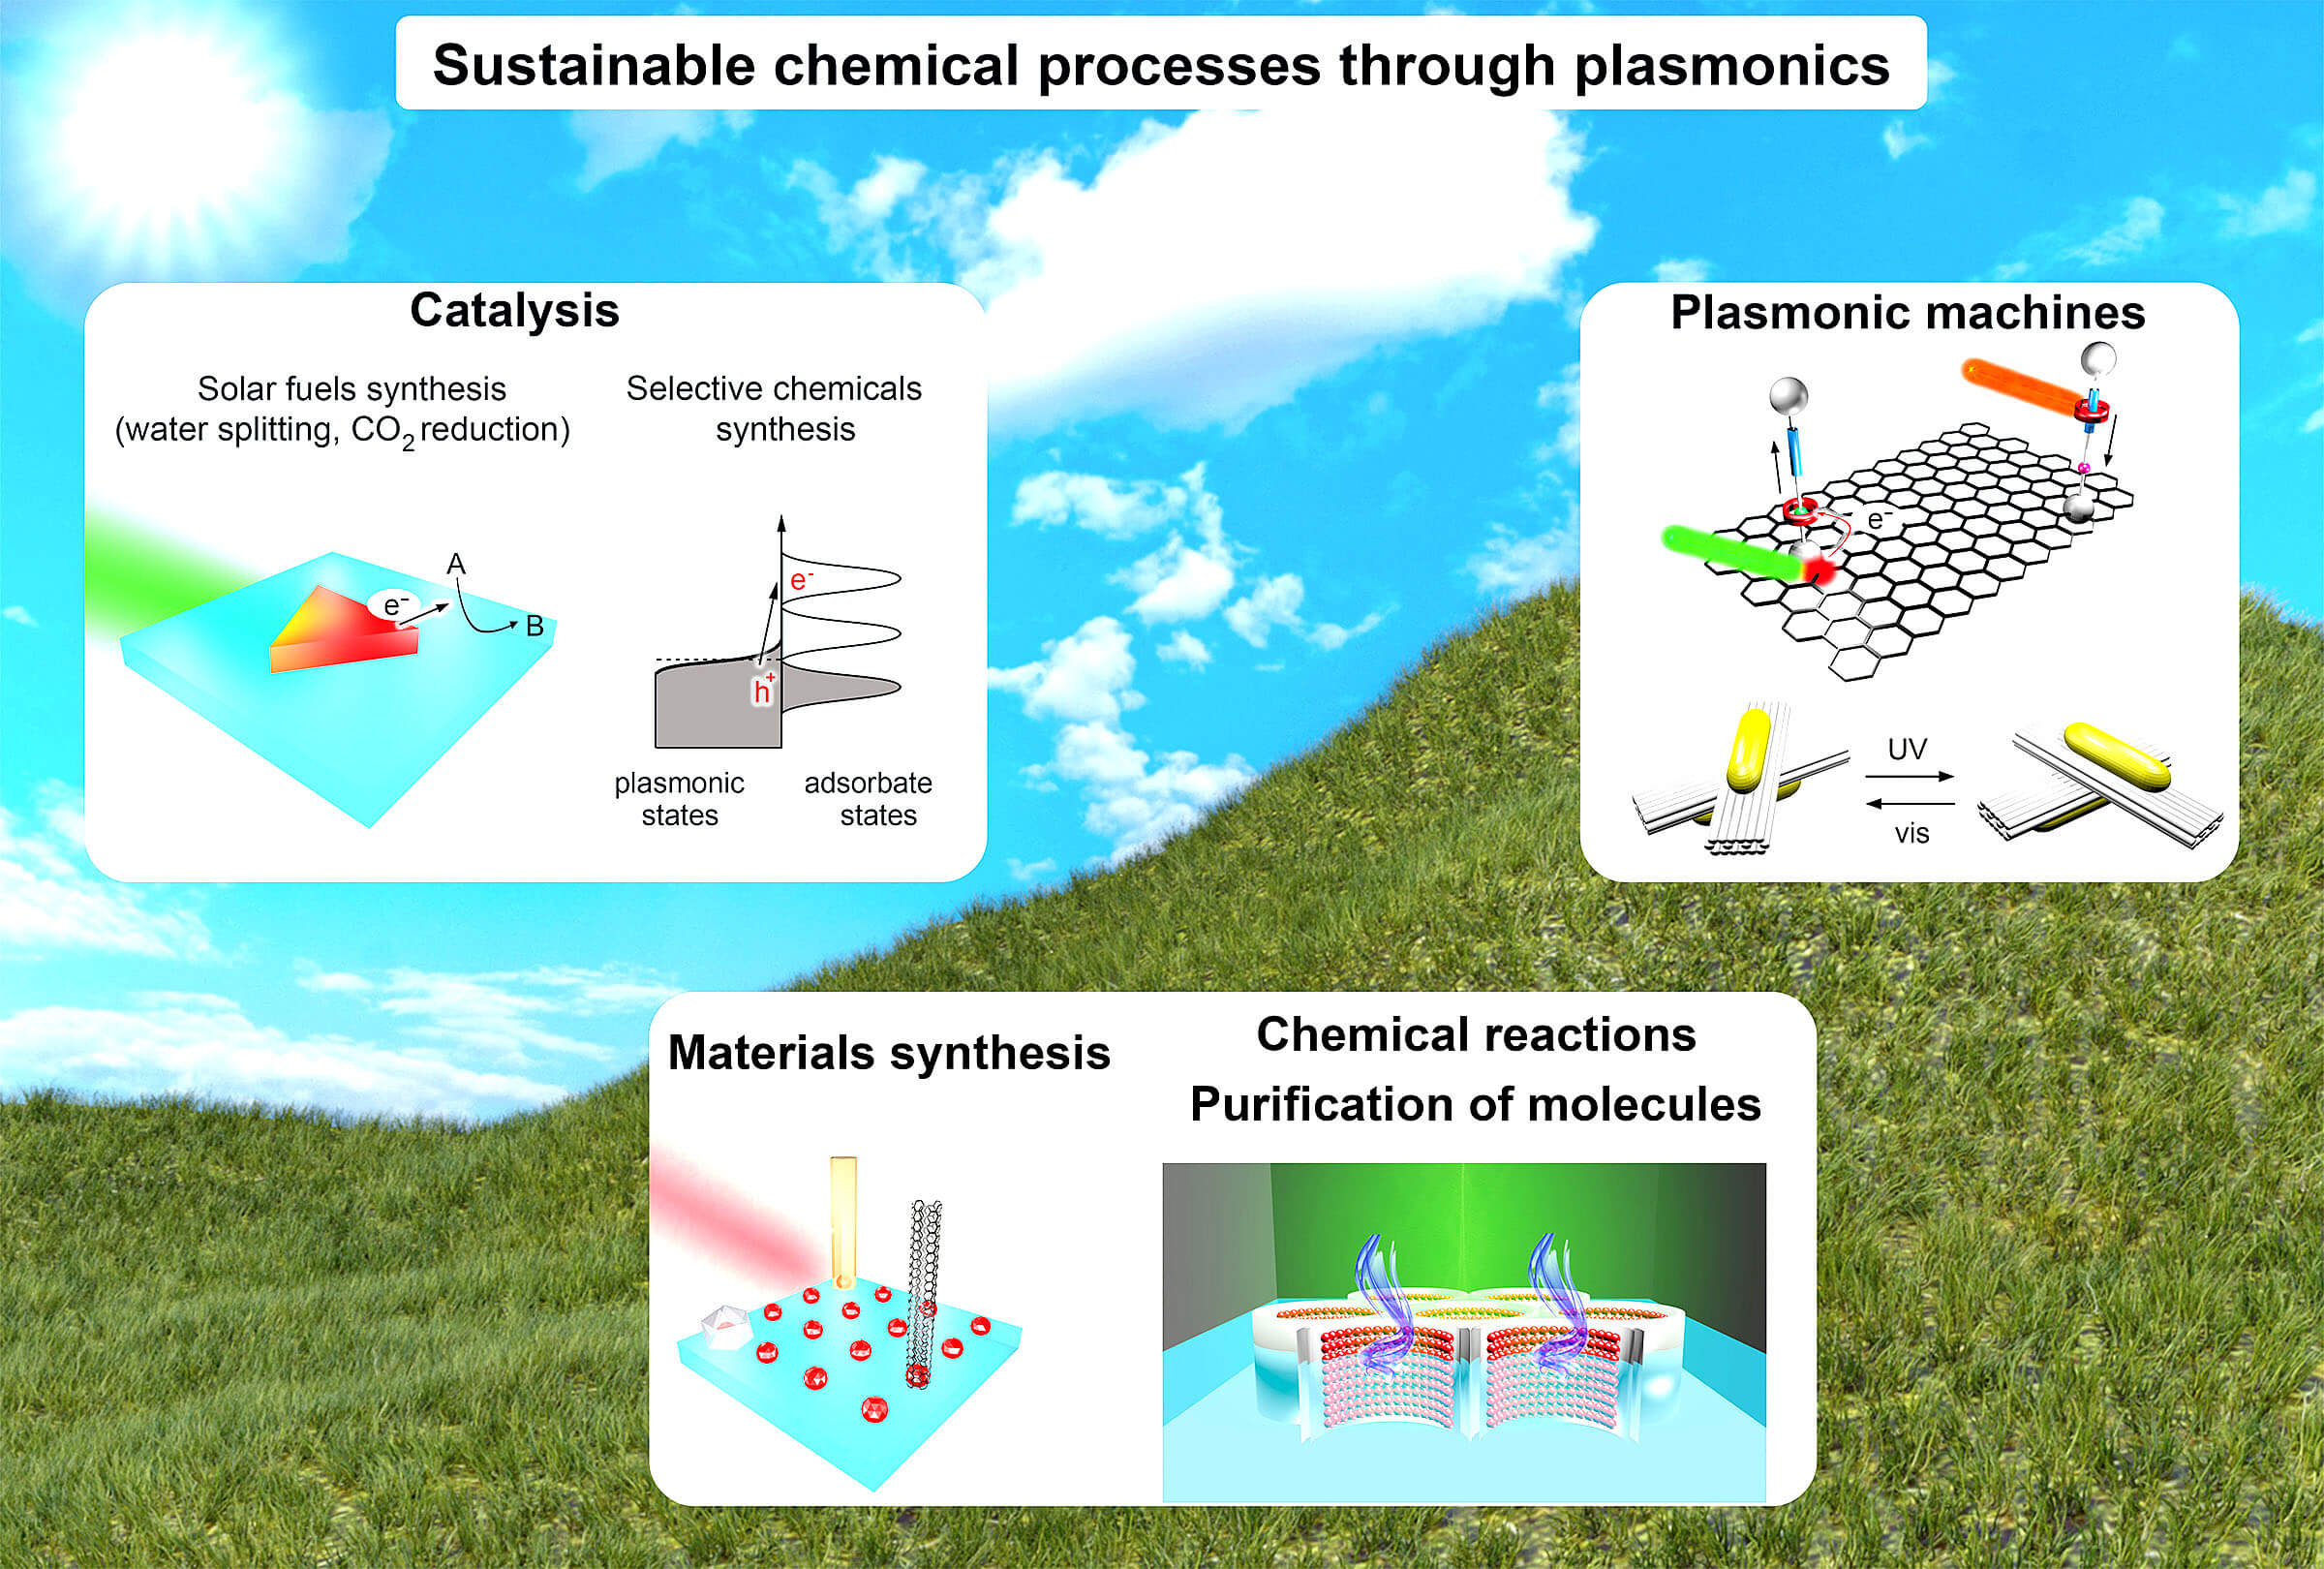 Plasmonics could bring sustainable society desalination tech